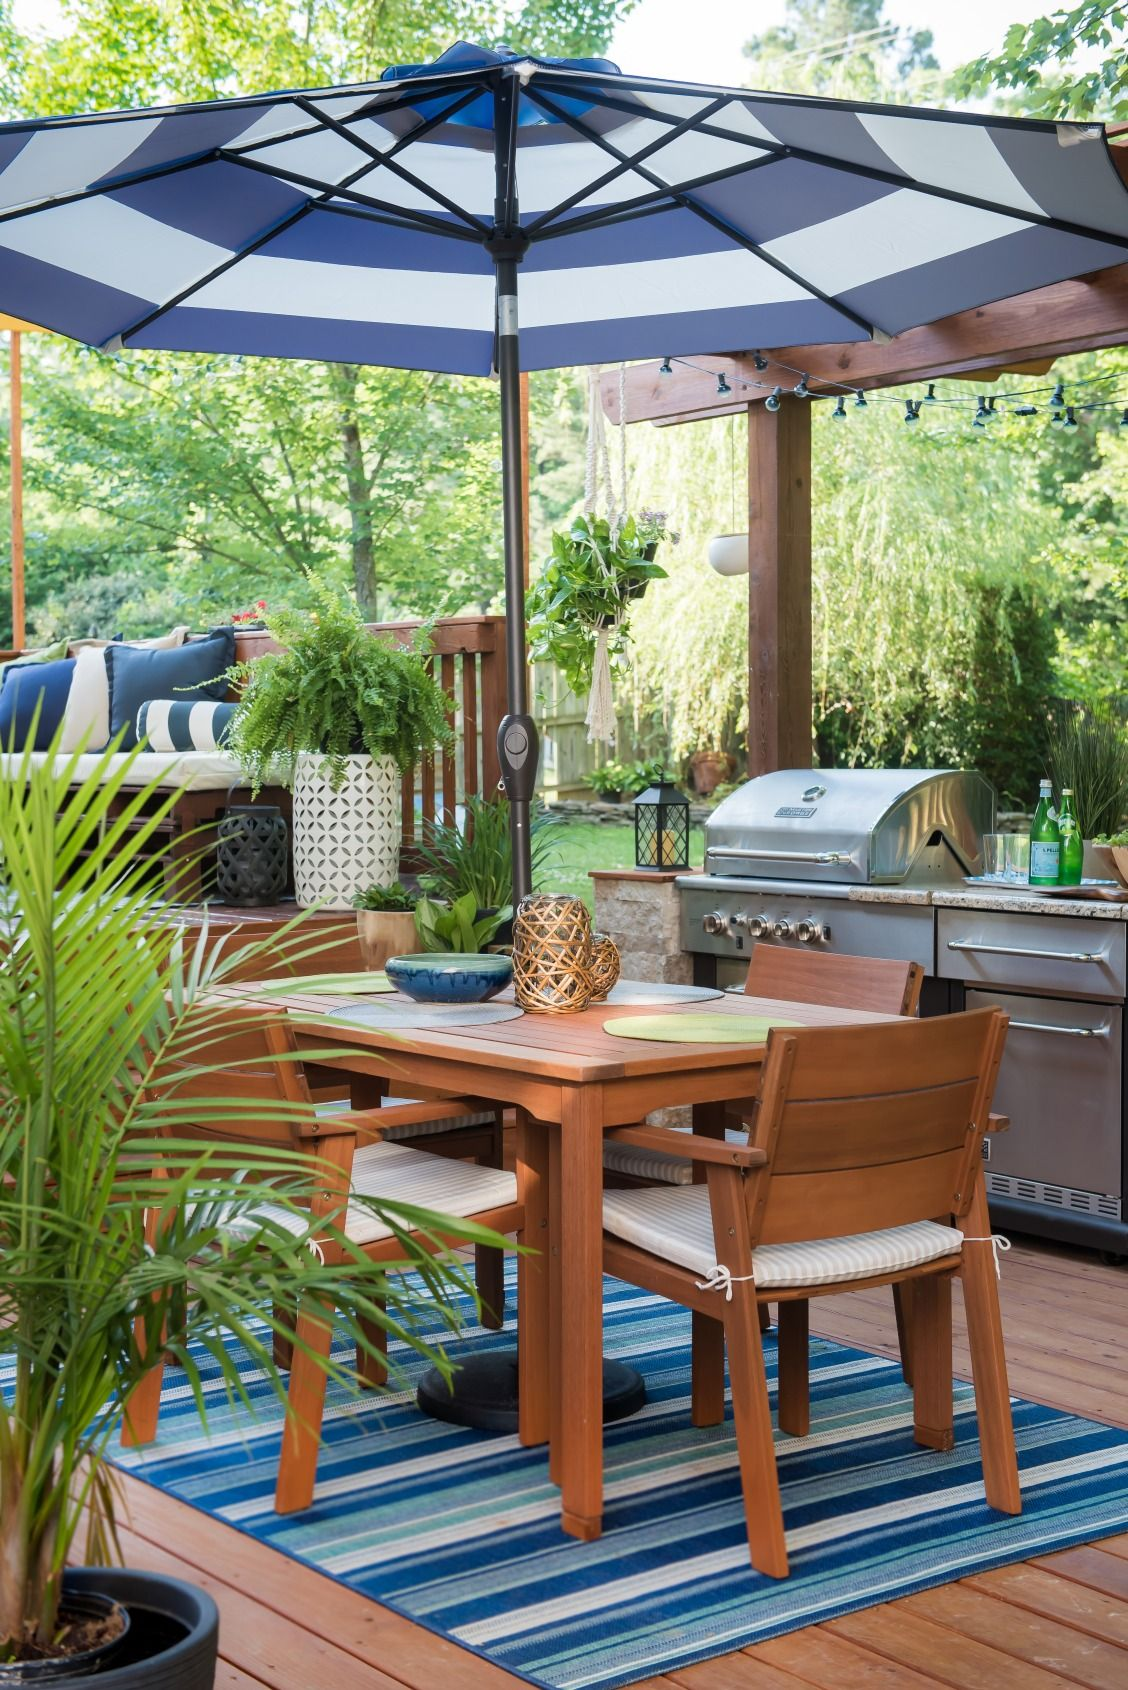 Place Of My Taste Designed The Ultimate Patio Dining Space, Lounge, And  Kitchen For Extended Outdoor Entertaining. Click To Get Every Detail.